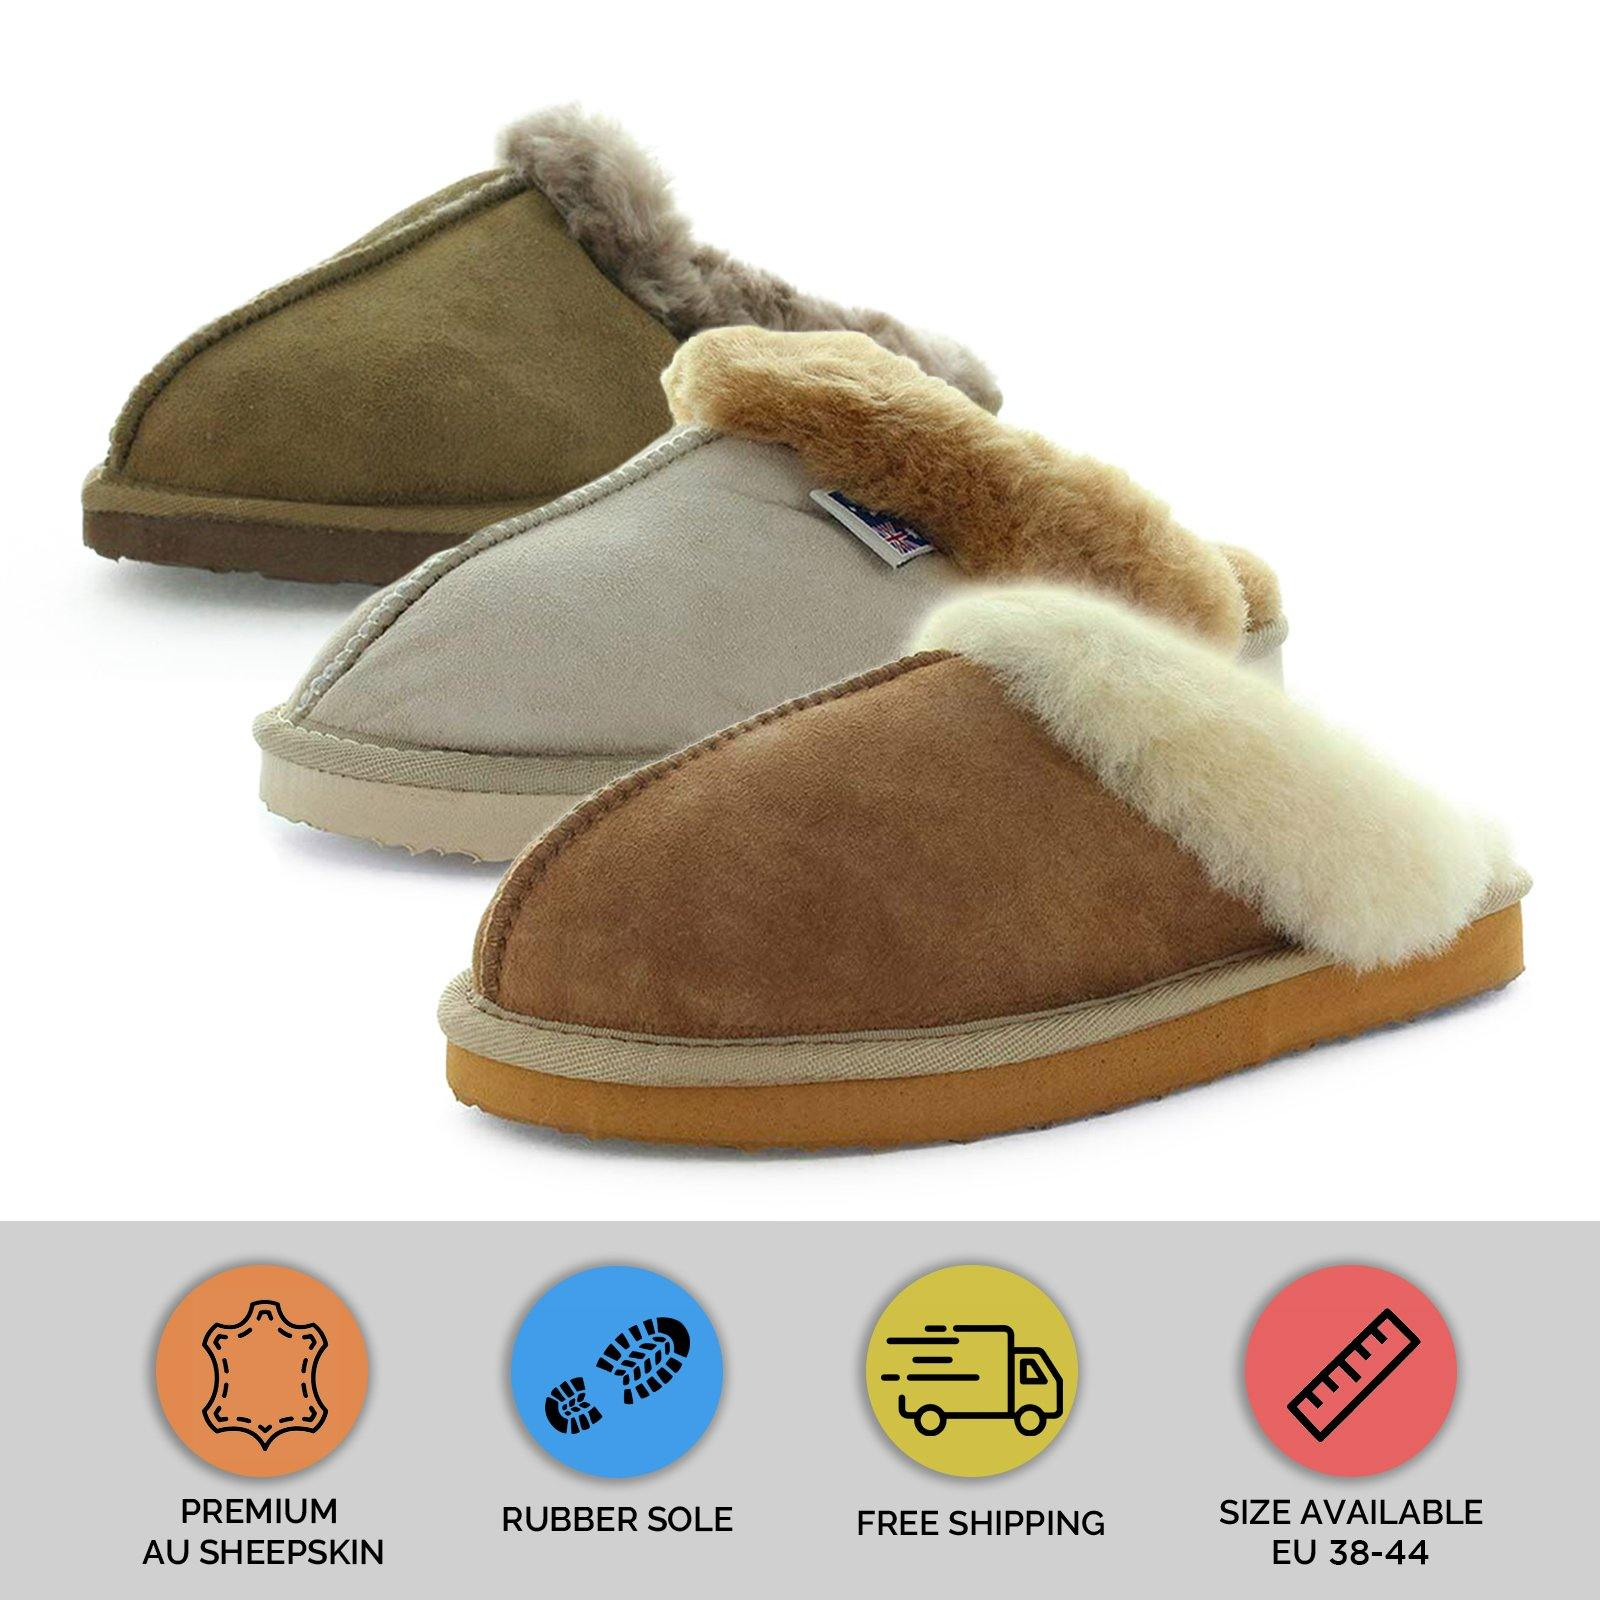 LADY SCUFF by YELLOW EARTH - iShoes - Sale, Women's Shoes, Women's Shoes: Slippers - FOOTWEAR-FOOTWEAR